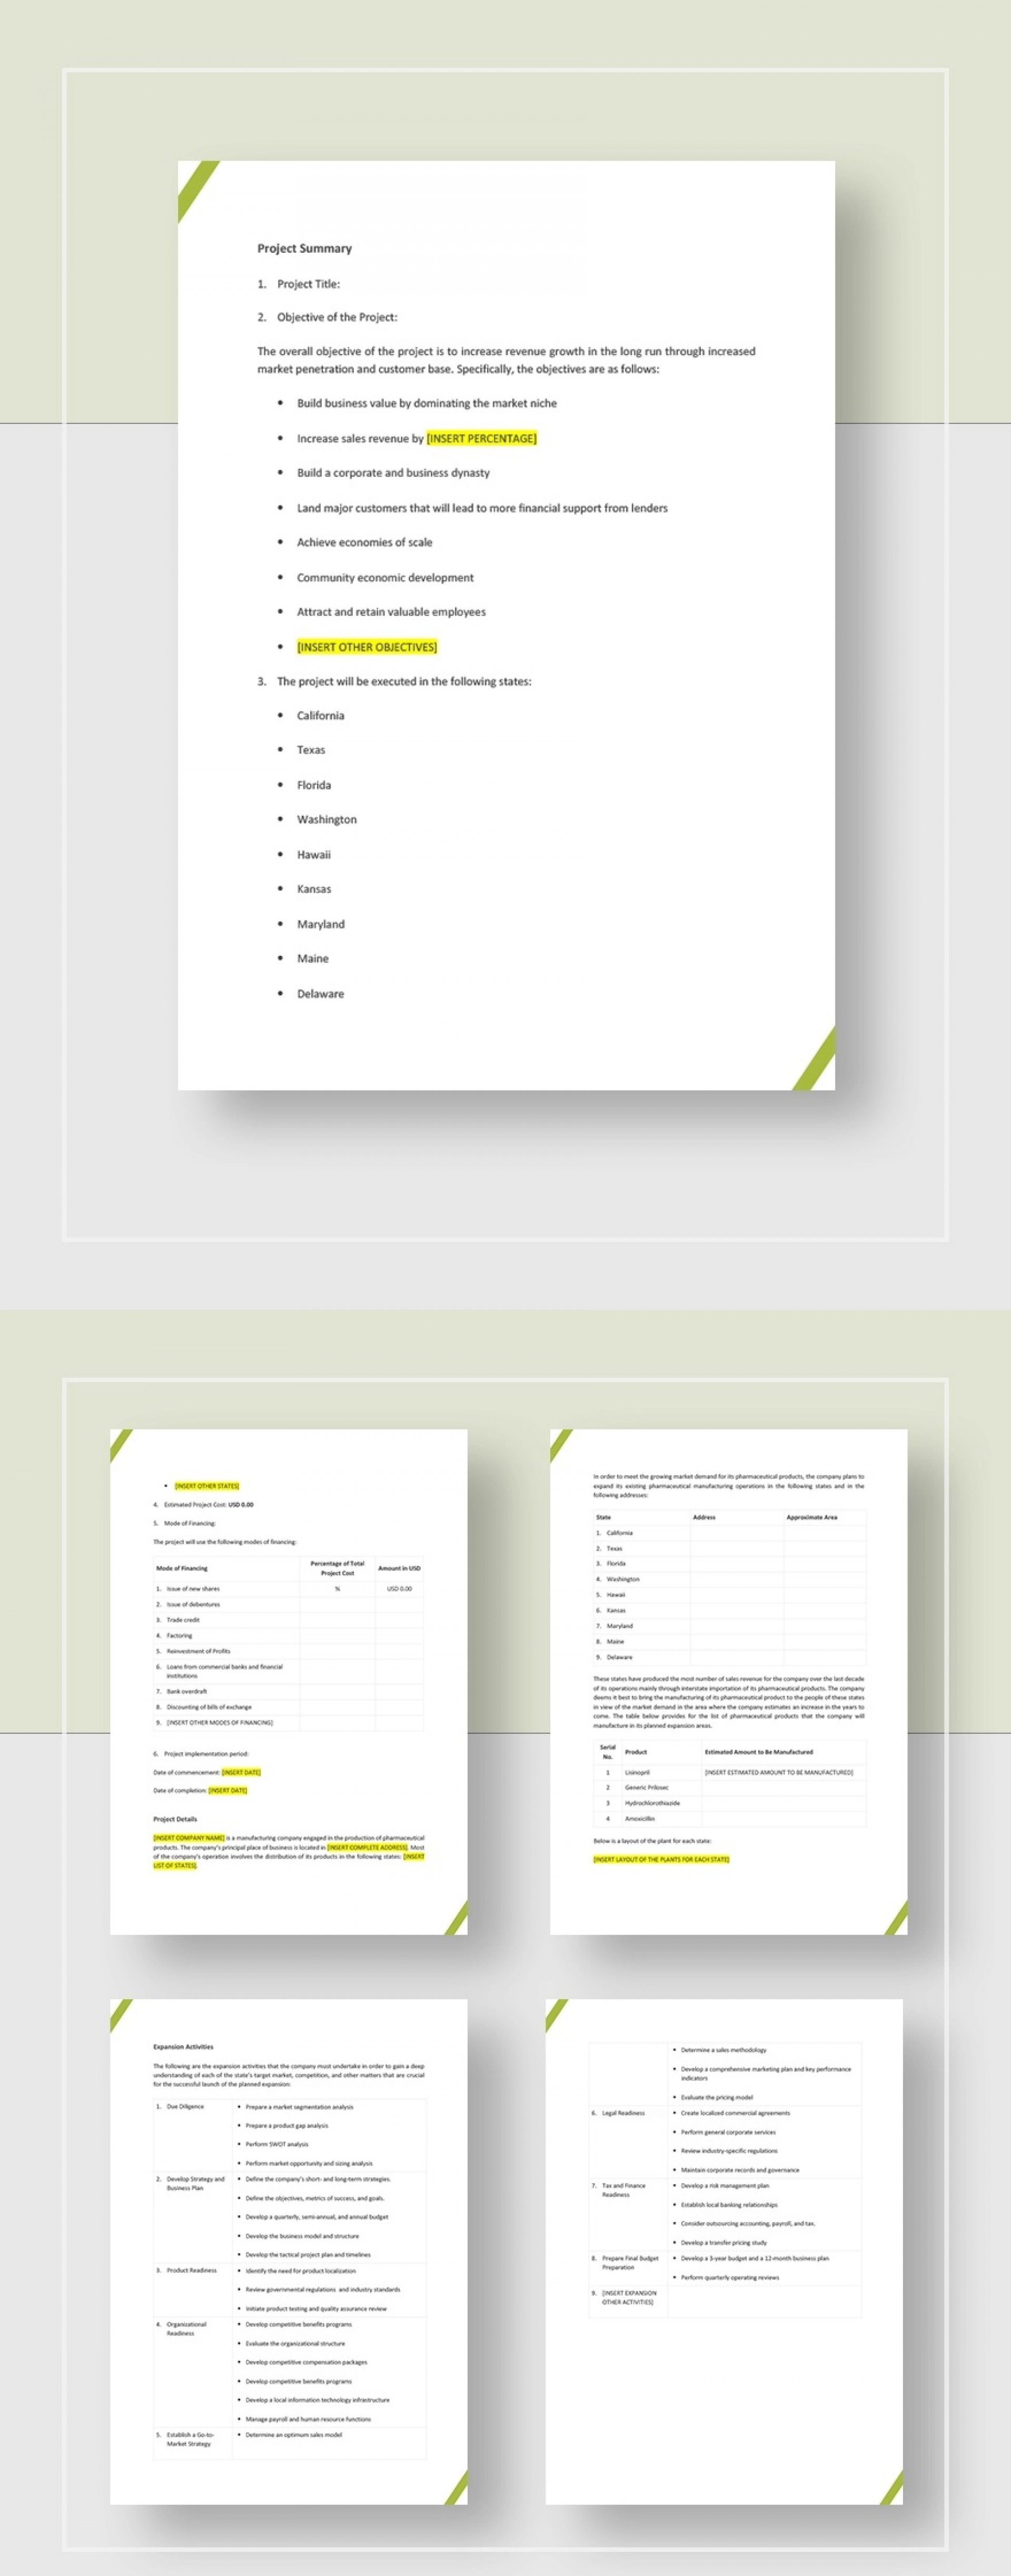 Development Project Proposal Template Jpg  Web Design & Powerpoint Sample1920